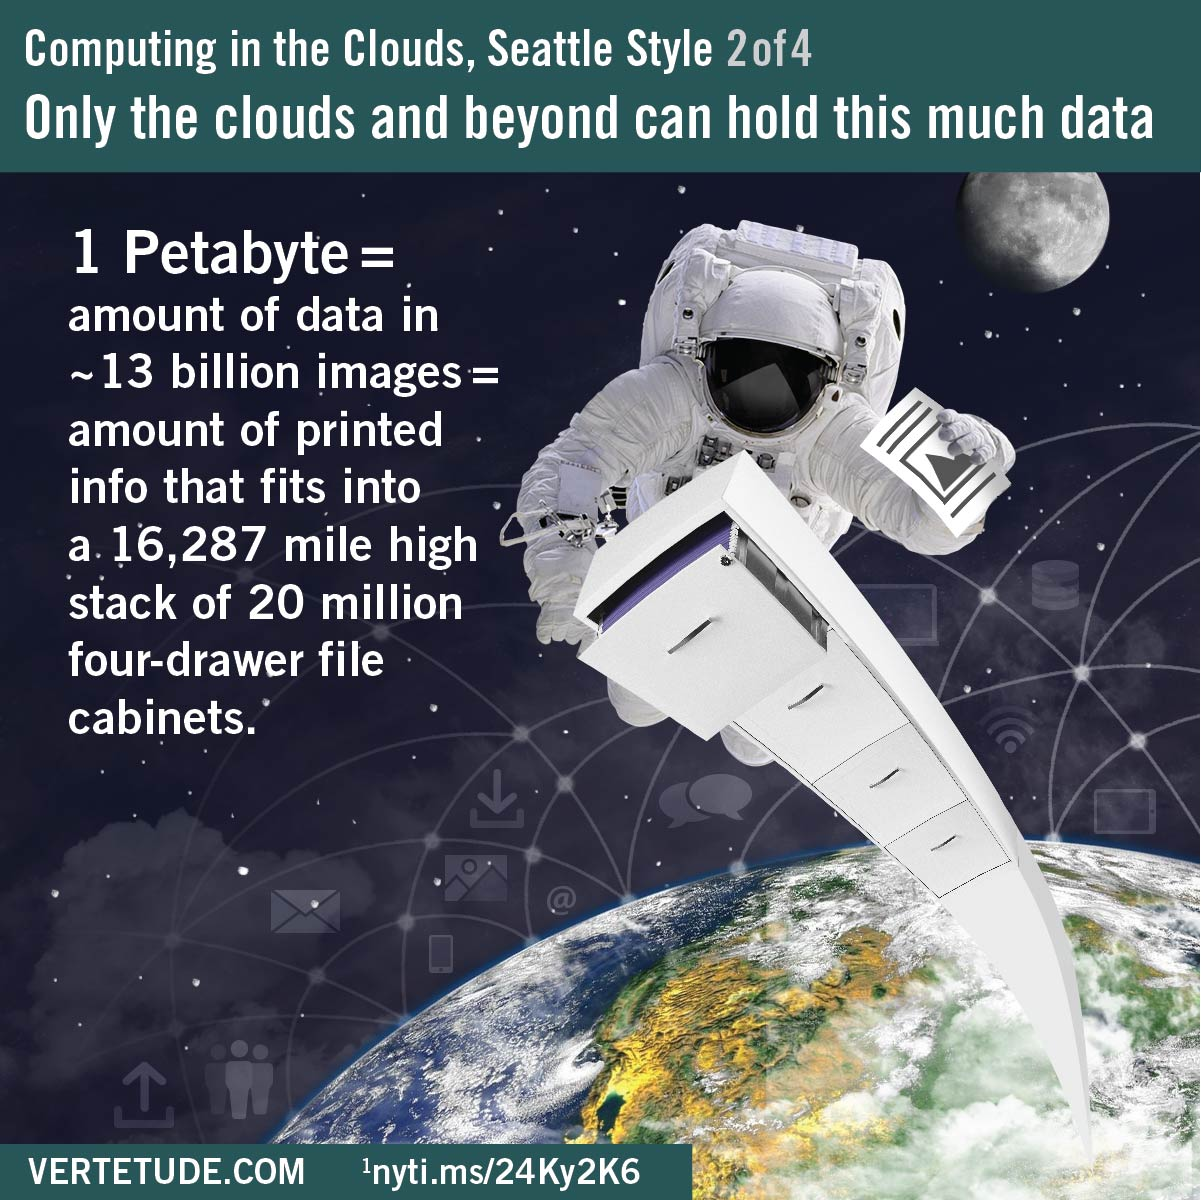 Infographic, cloud computing in Seattle, a petabyte of data and information